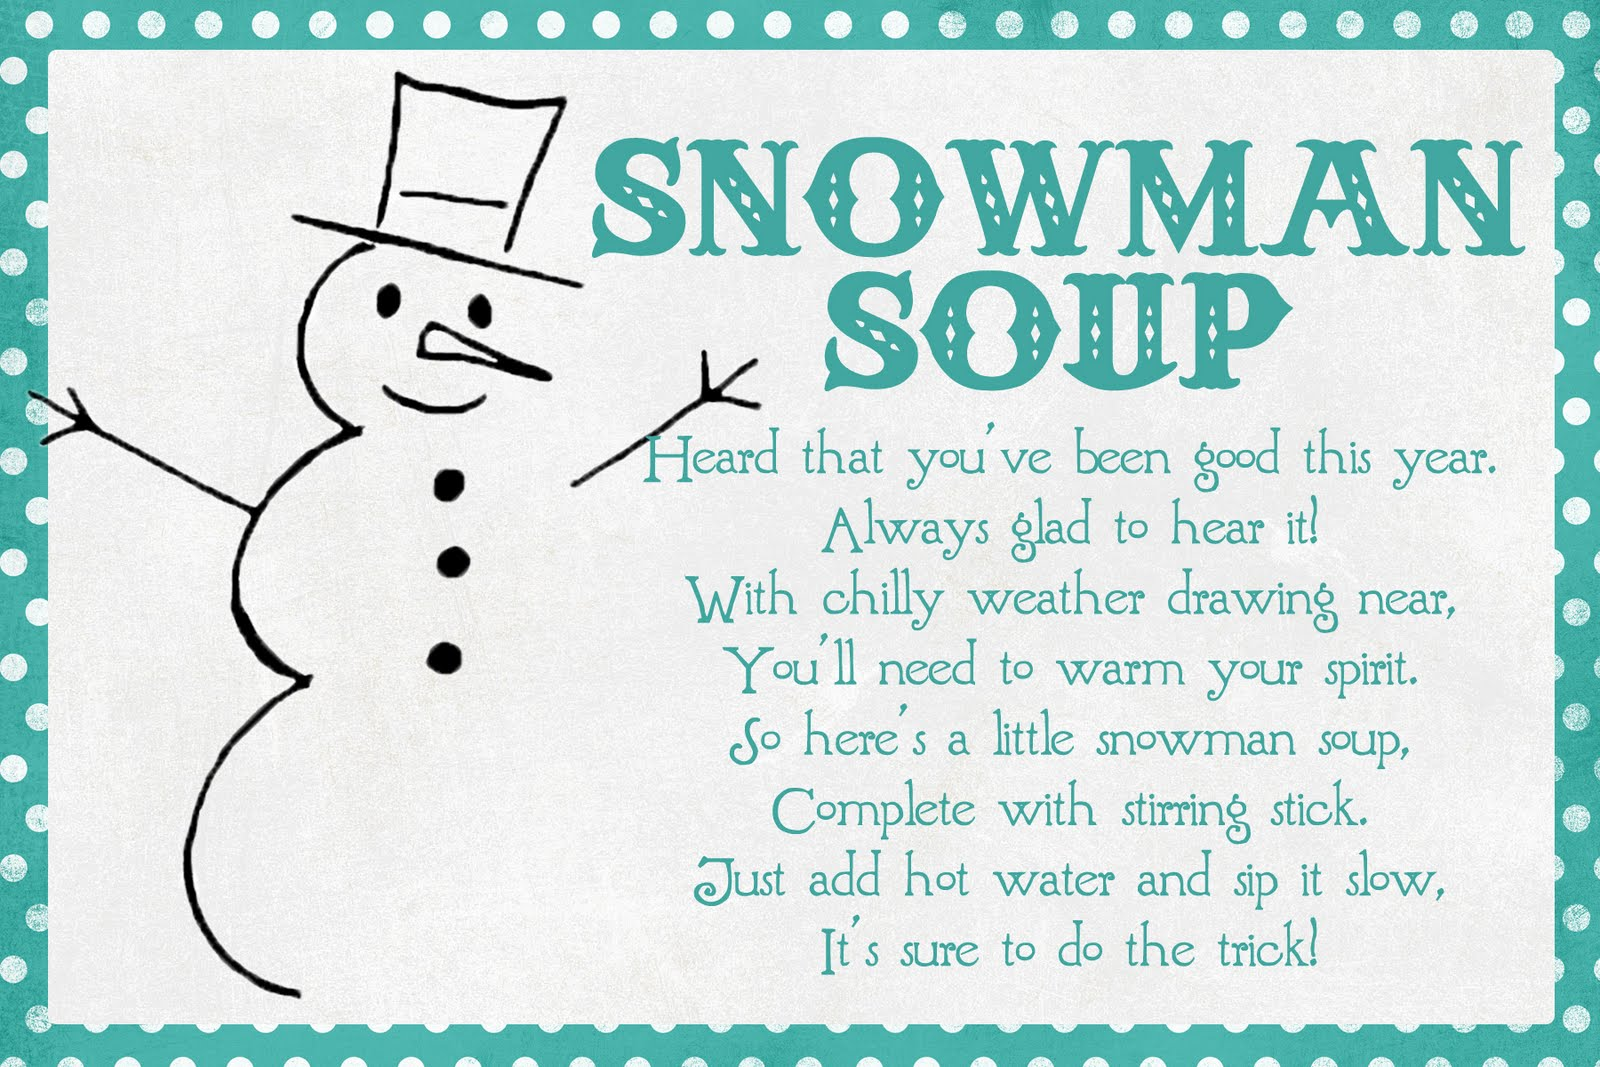 ... 1067 jpeg 244kB, Snowman Soup Printable January fun: snowman soup